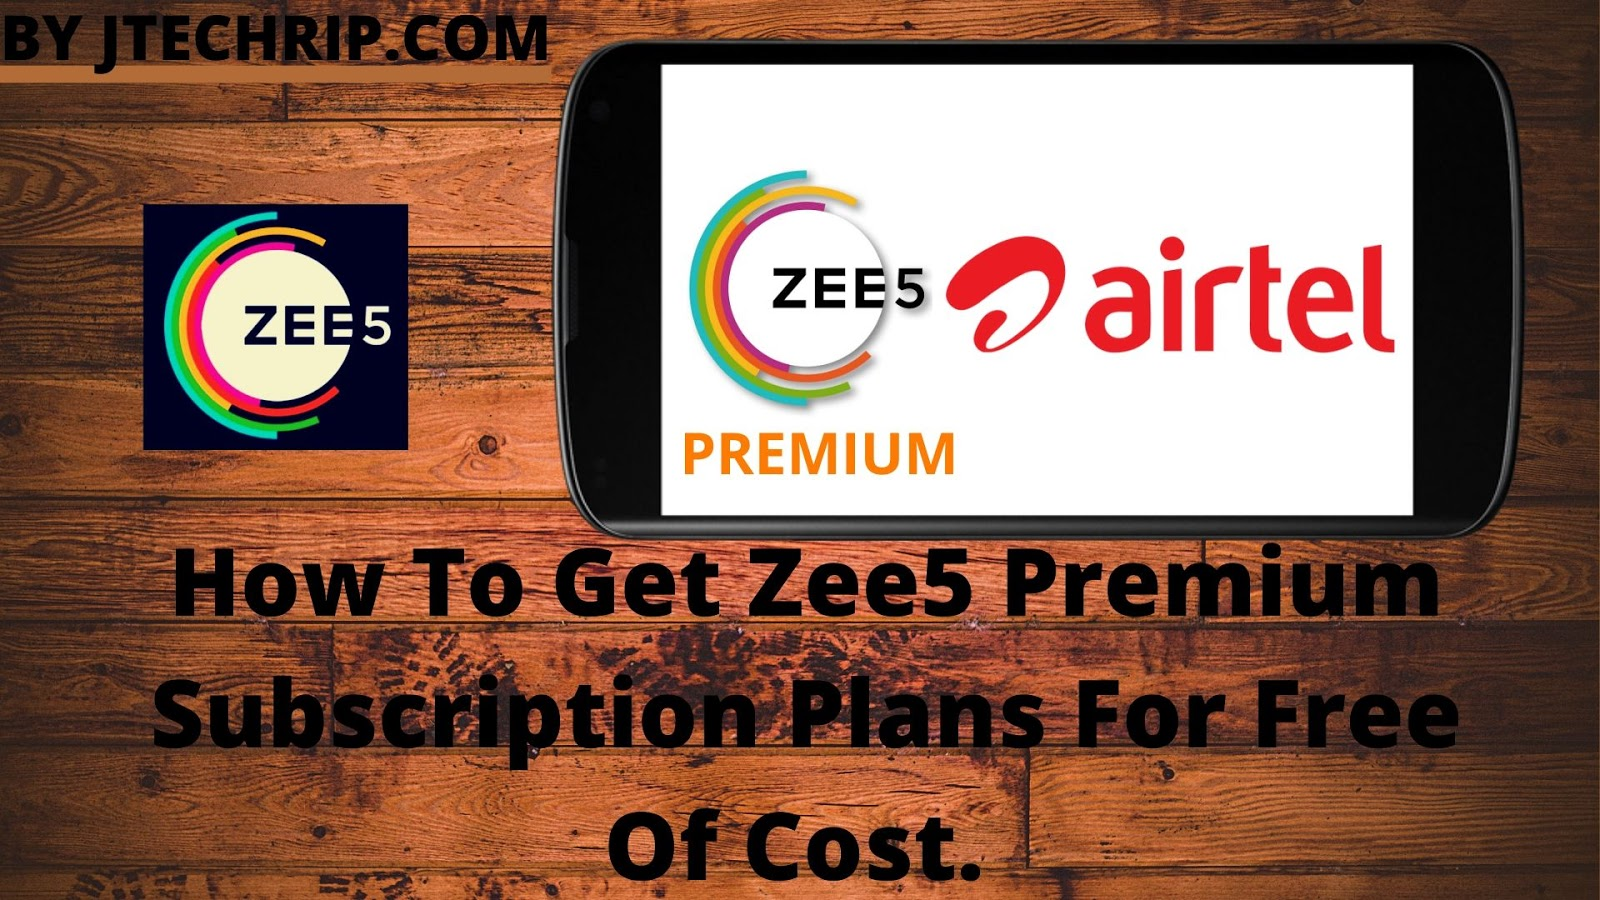 HowTo Get Zee5 Premium Subscription Plans For Free Of Cost.